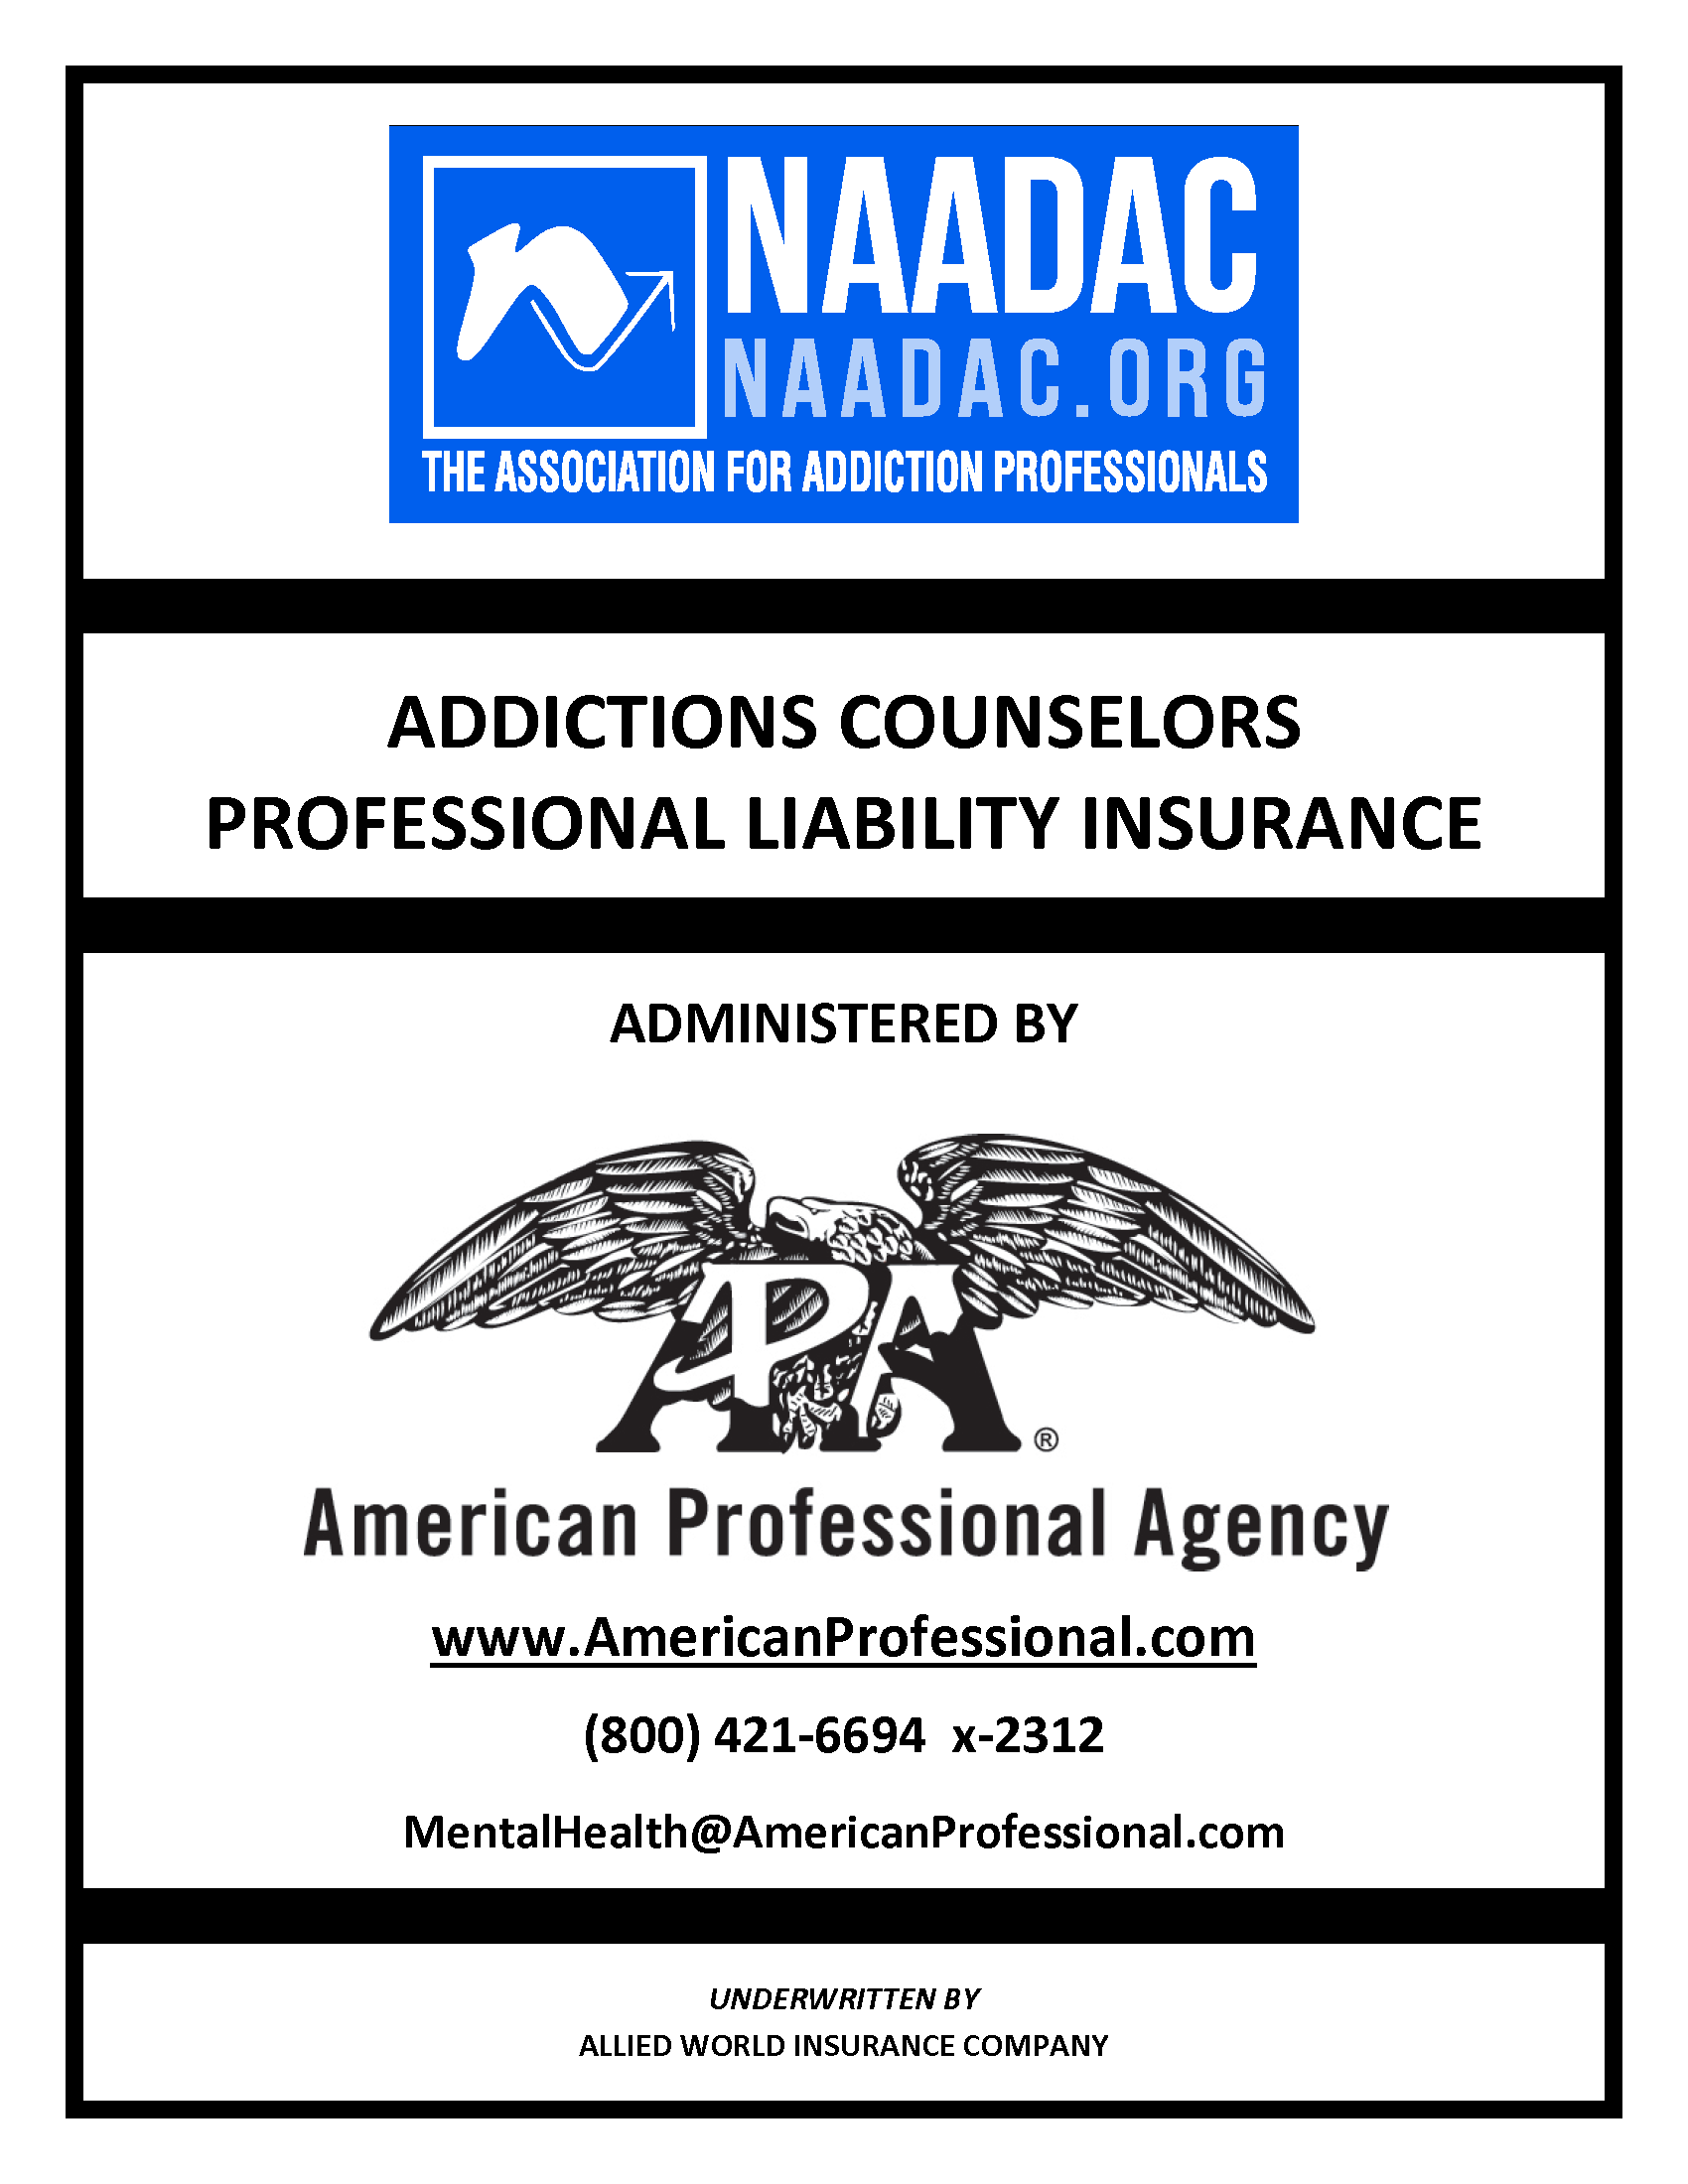 NAADAC Cover for brochure